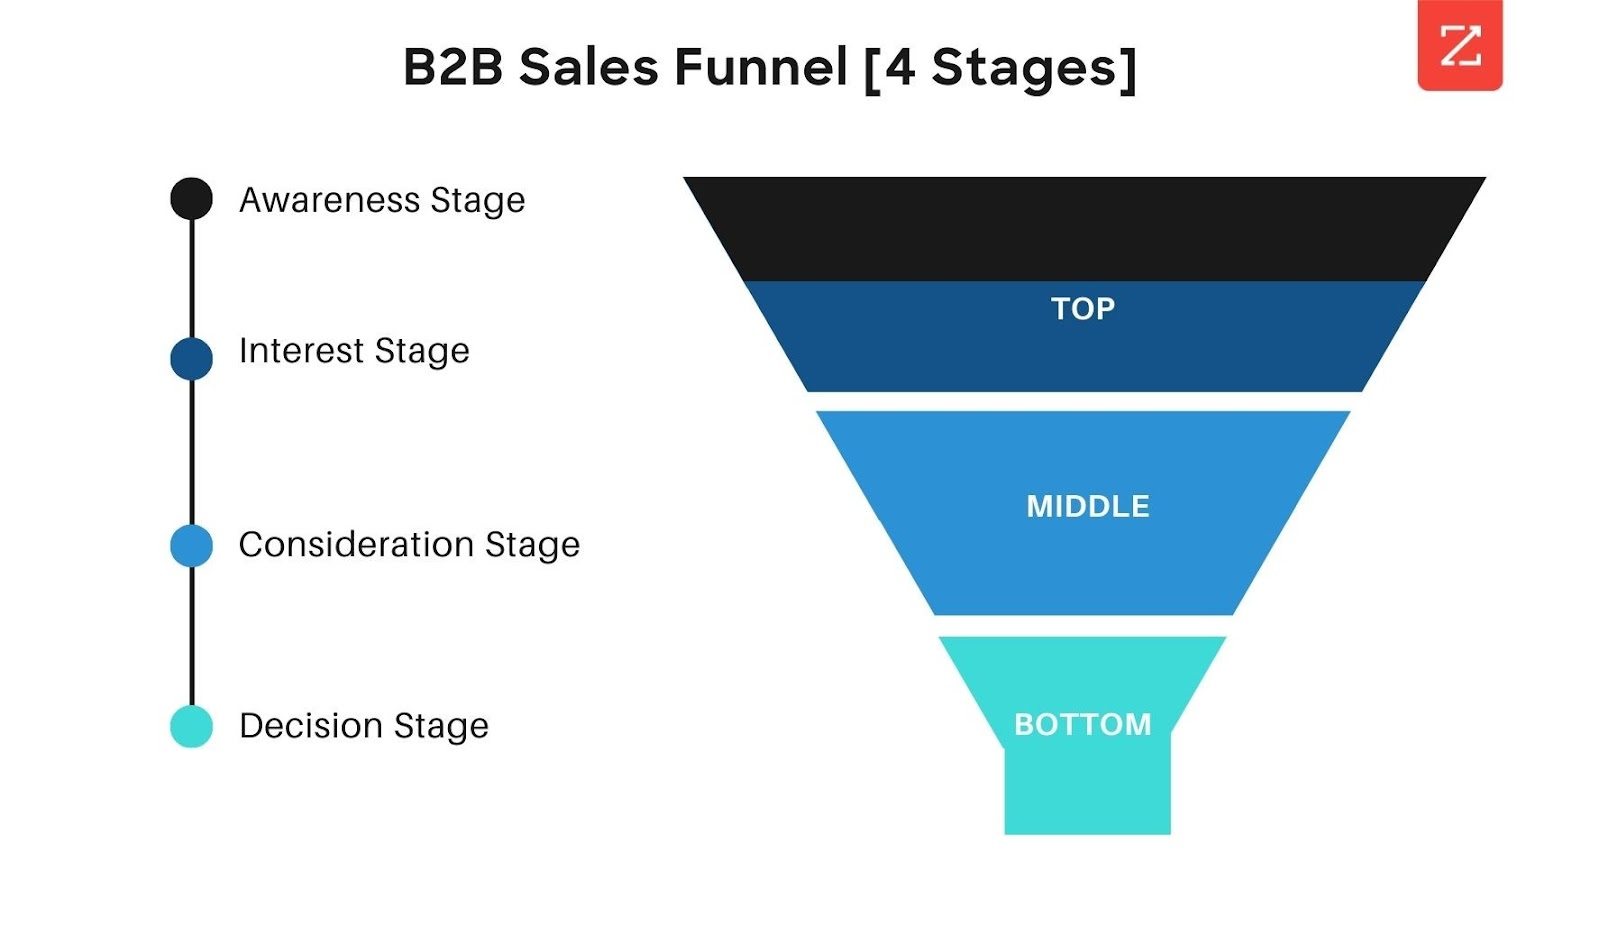 B2B Sales Funnel 4 Stages showing awareness stage, interest stage, consideration stage, and decision stage.